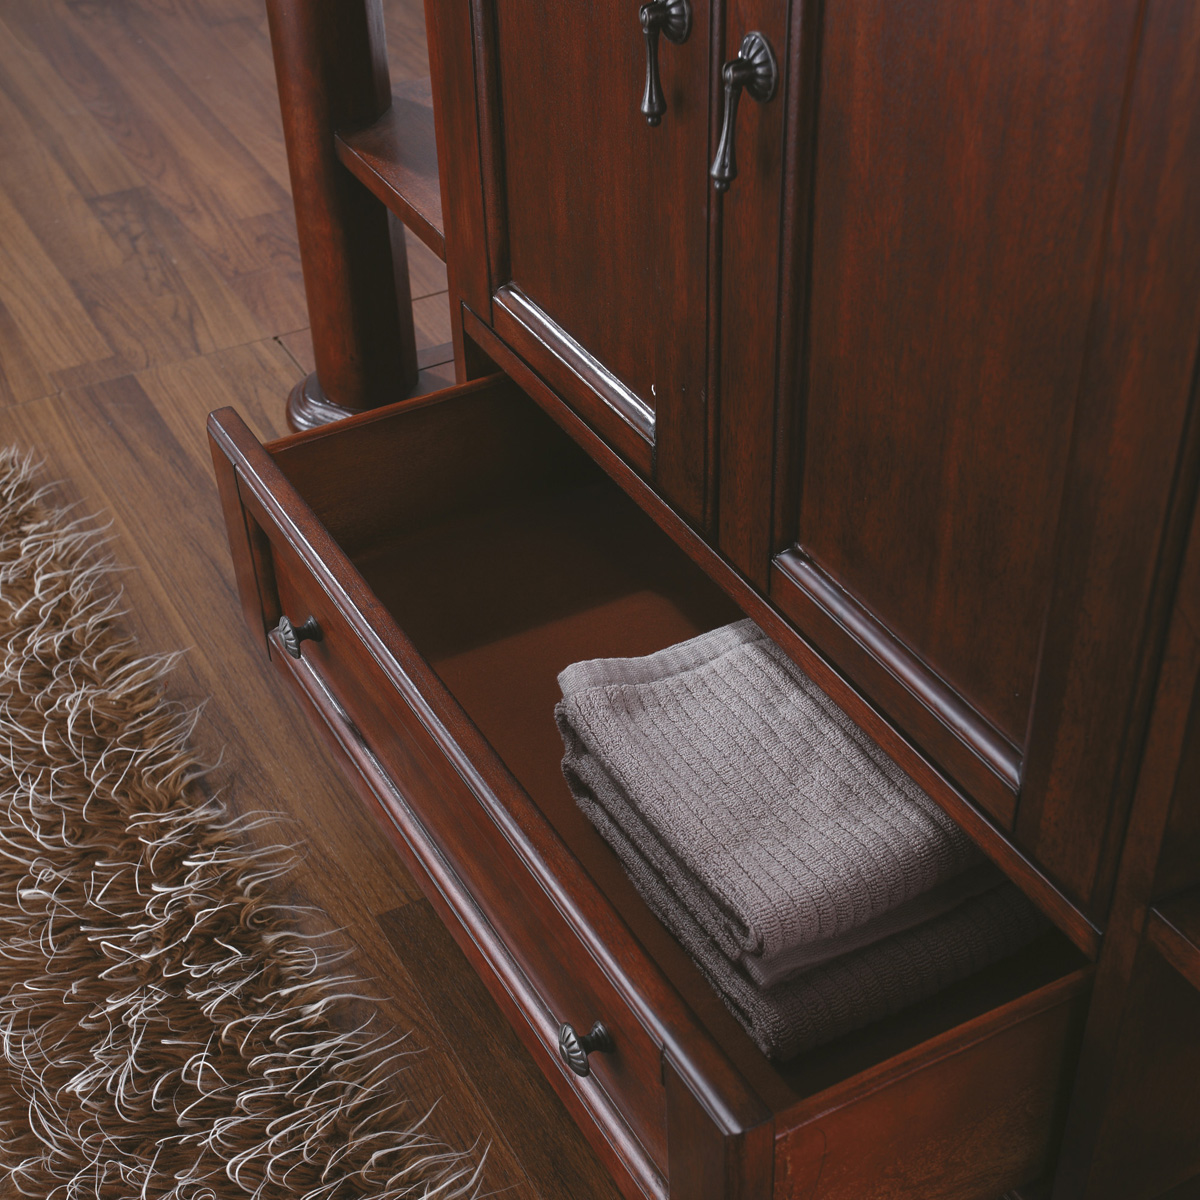 Bottom pull-out drawer is great for towels!